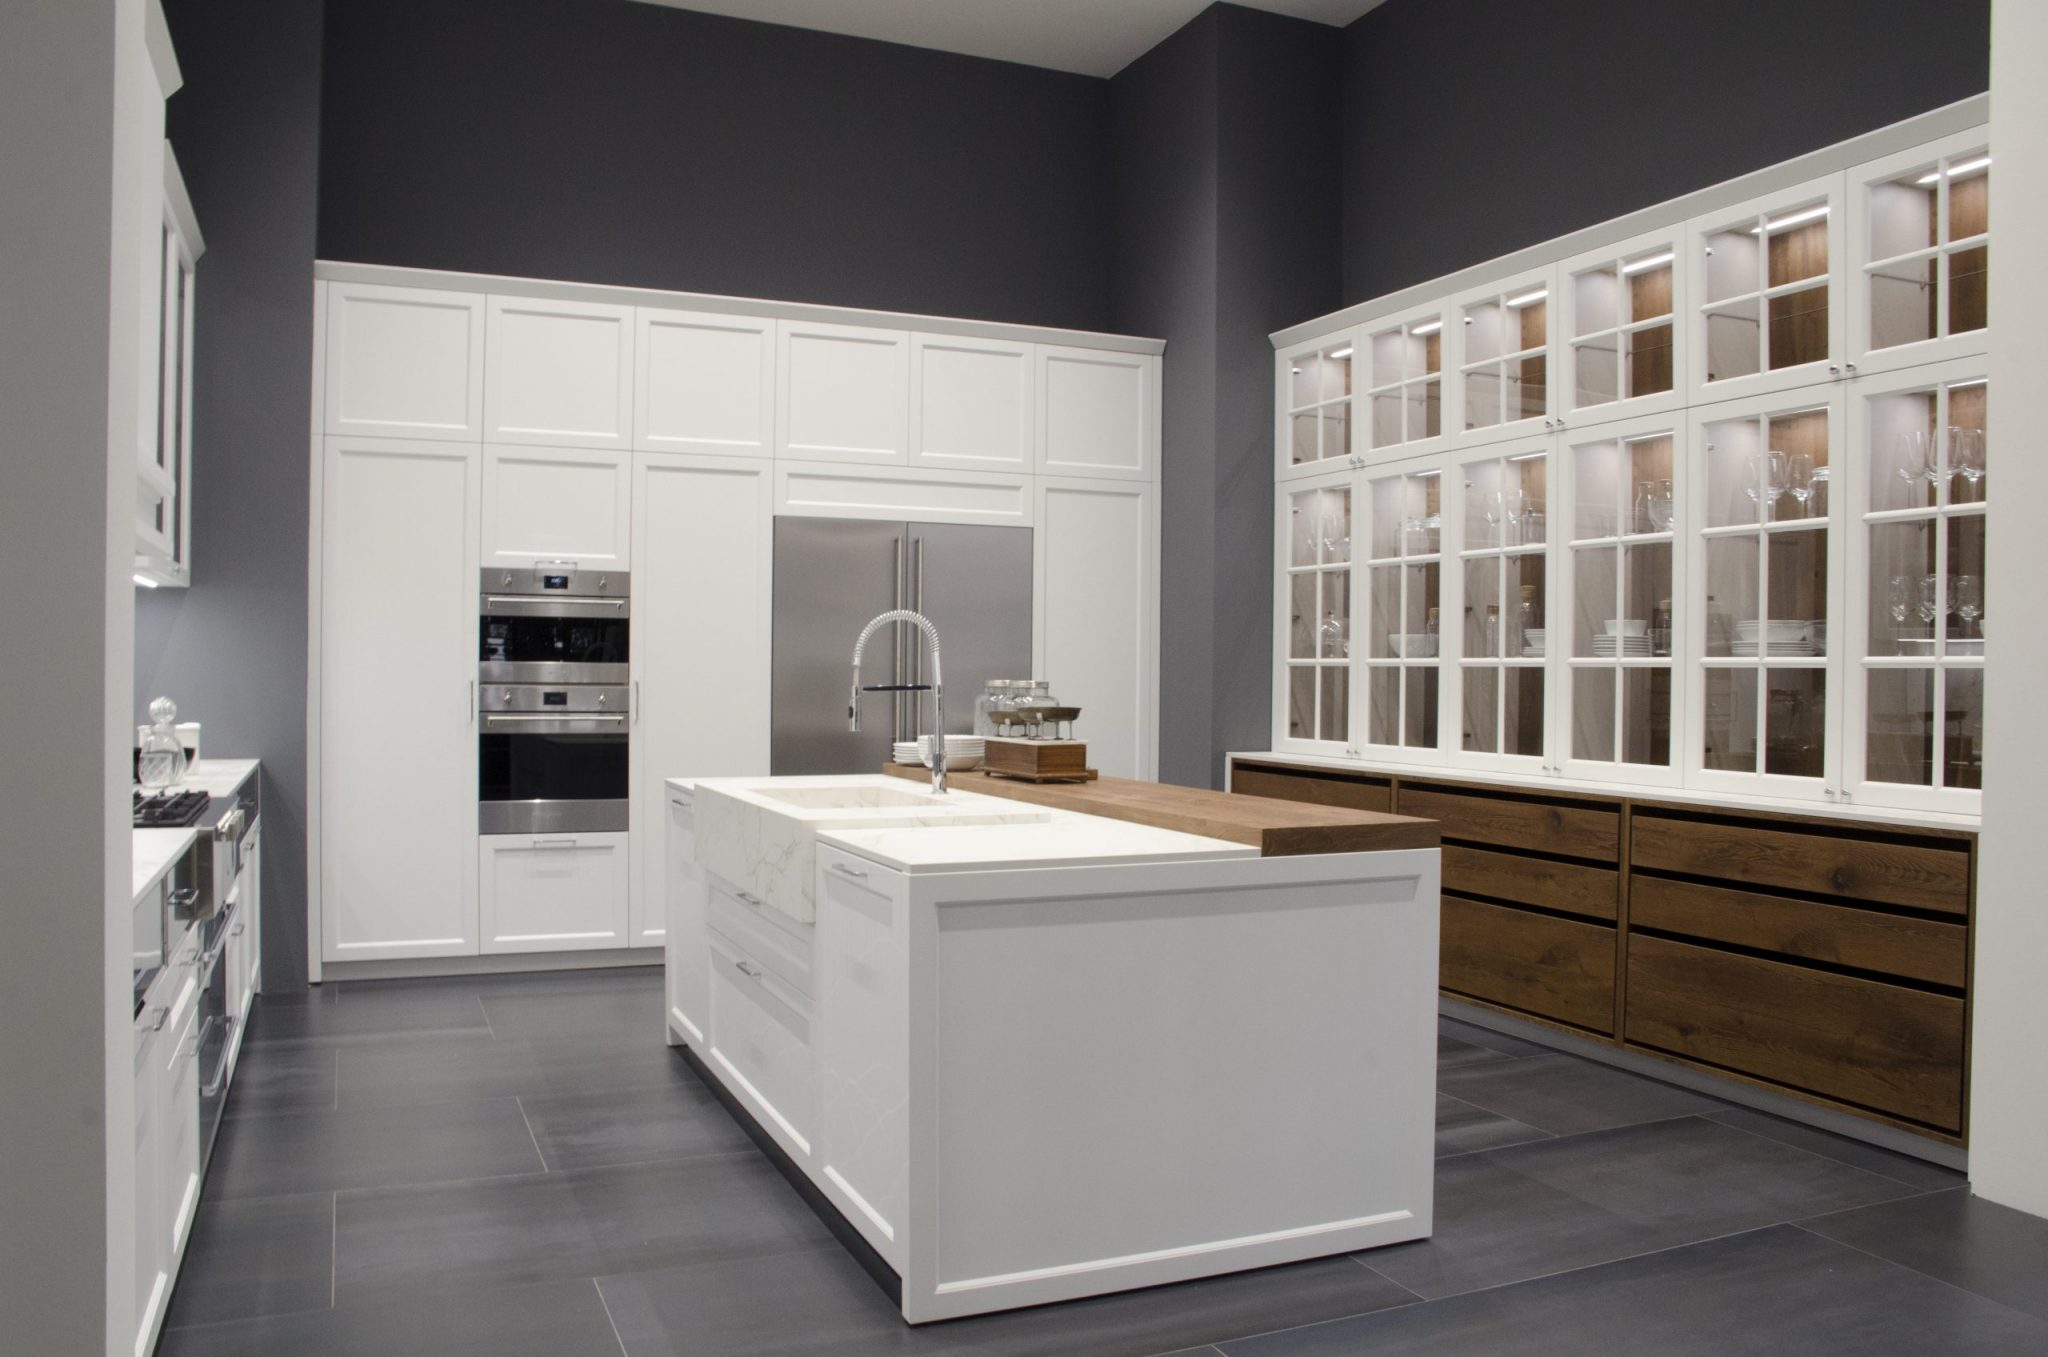 A homage to the traditional kitchen brought up to date with modern touches. The special features: classic framed door, moldings for framing the glass wall units, idea boards, and the touches of warmth from wood and the single-block basins in marble, also used for a sophisticated and practical back for the cooking area.